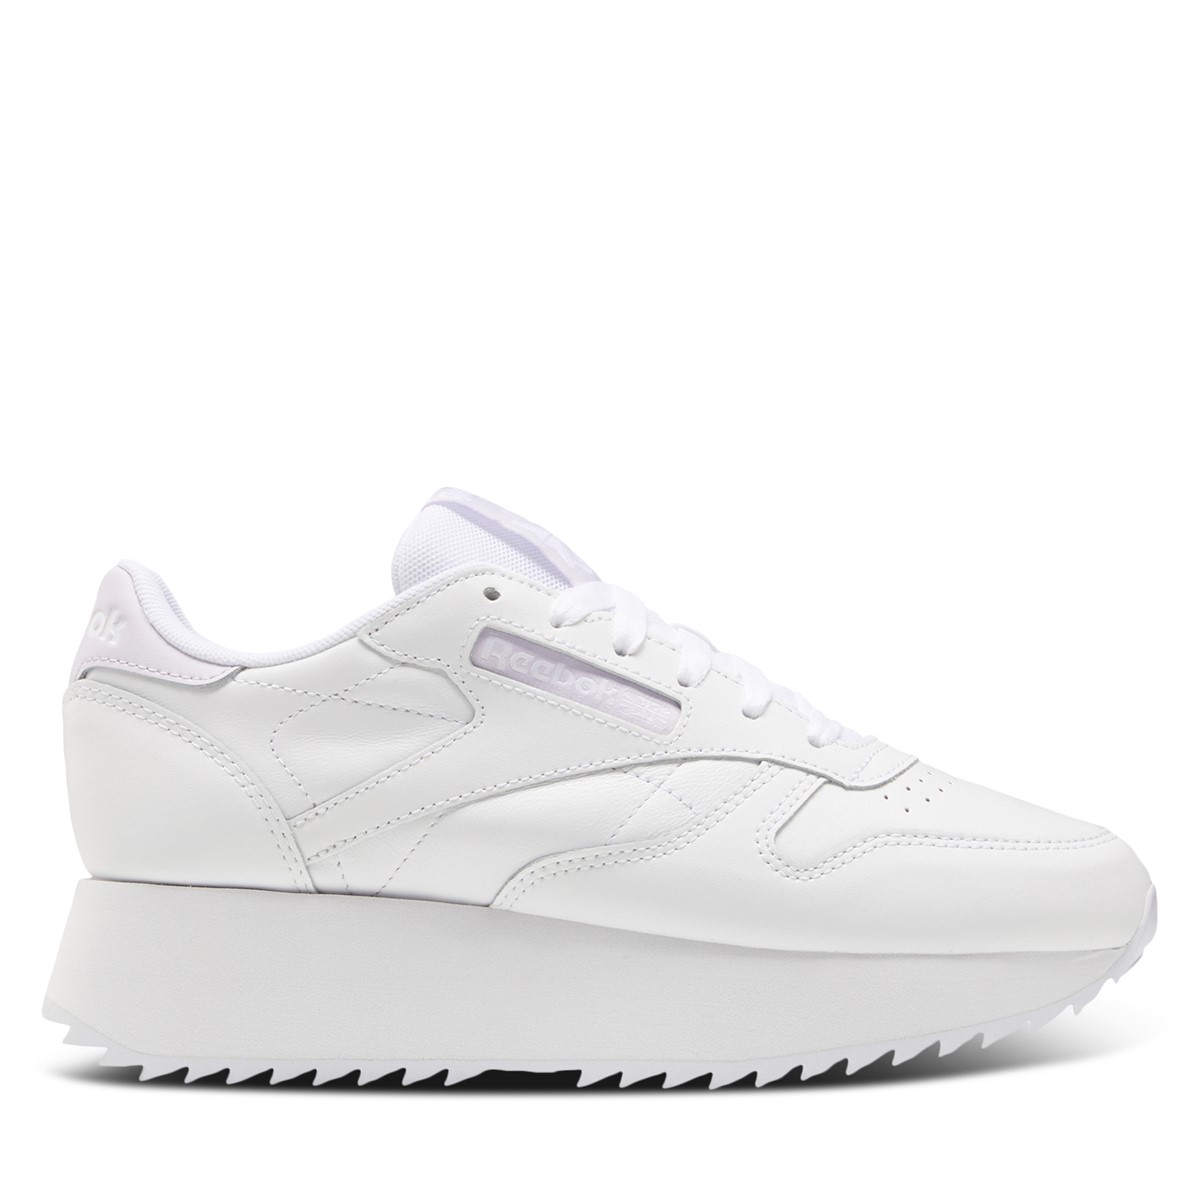 Women's Classic Leather Platform Sneakers in White/Lilac